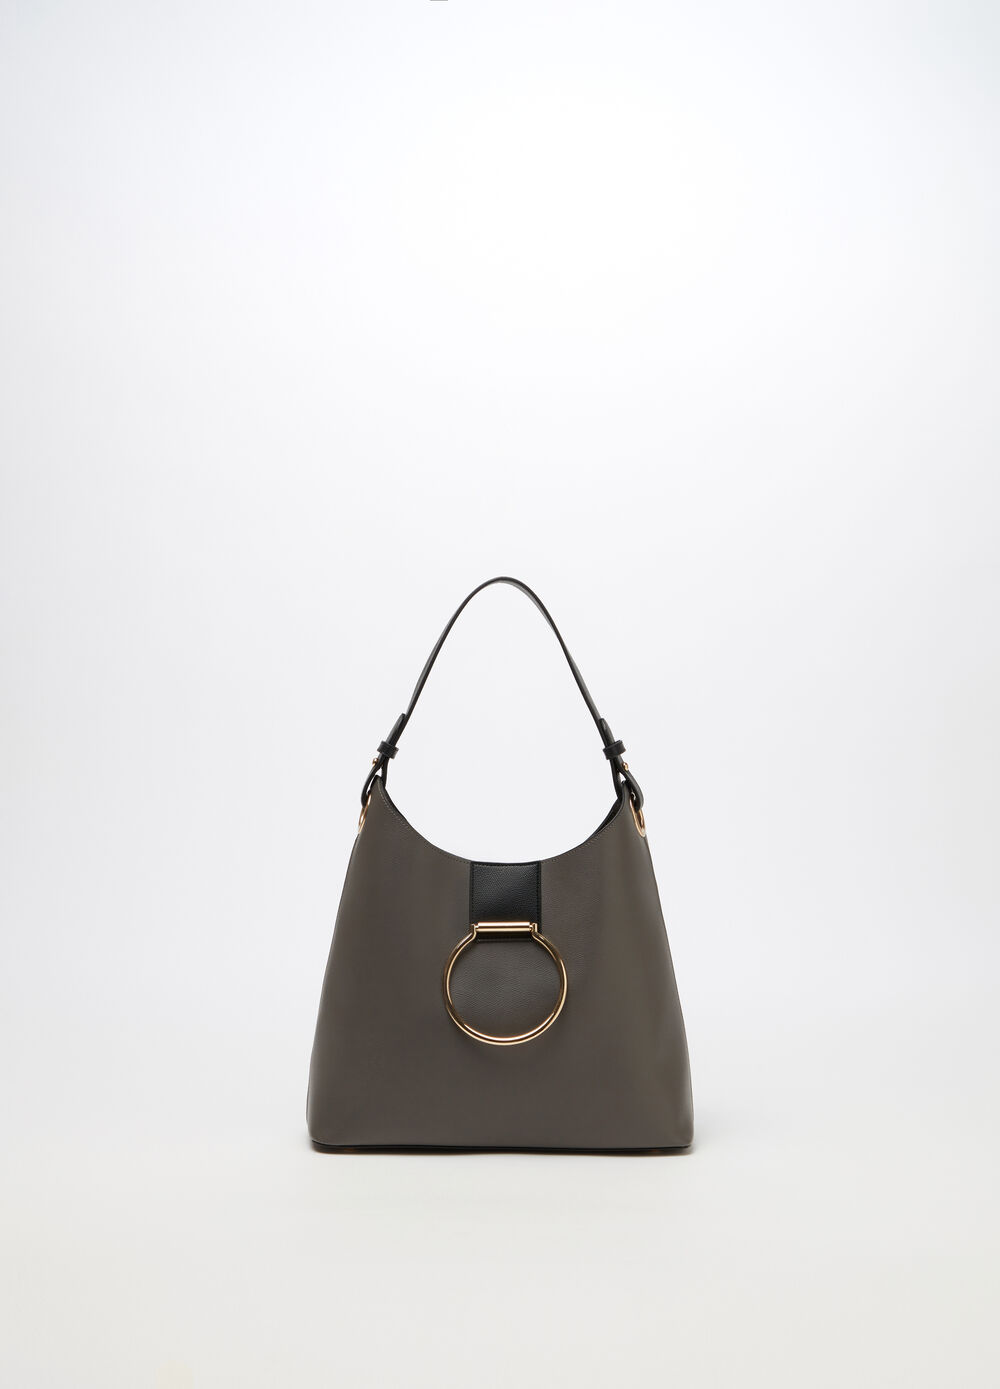 Two-tone hobo bag